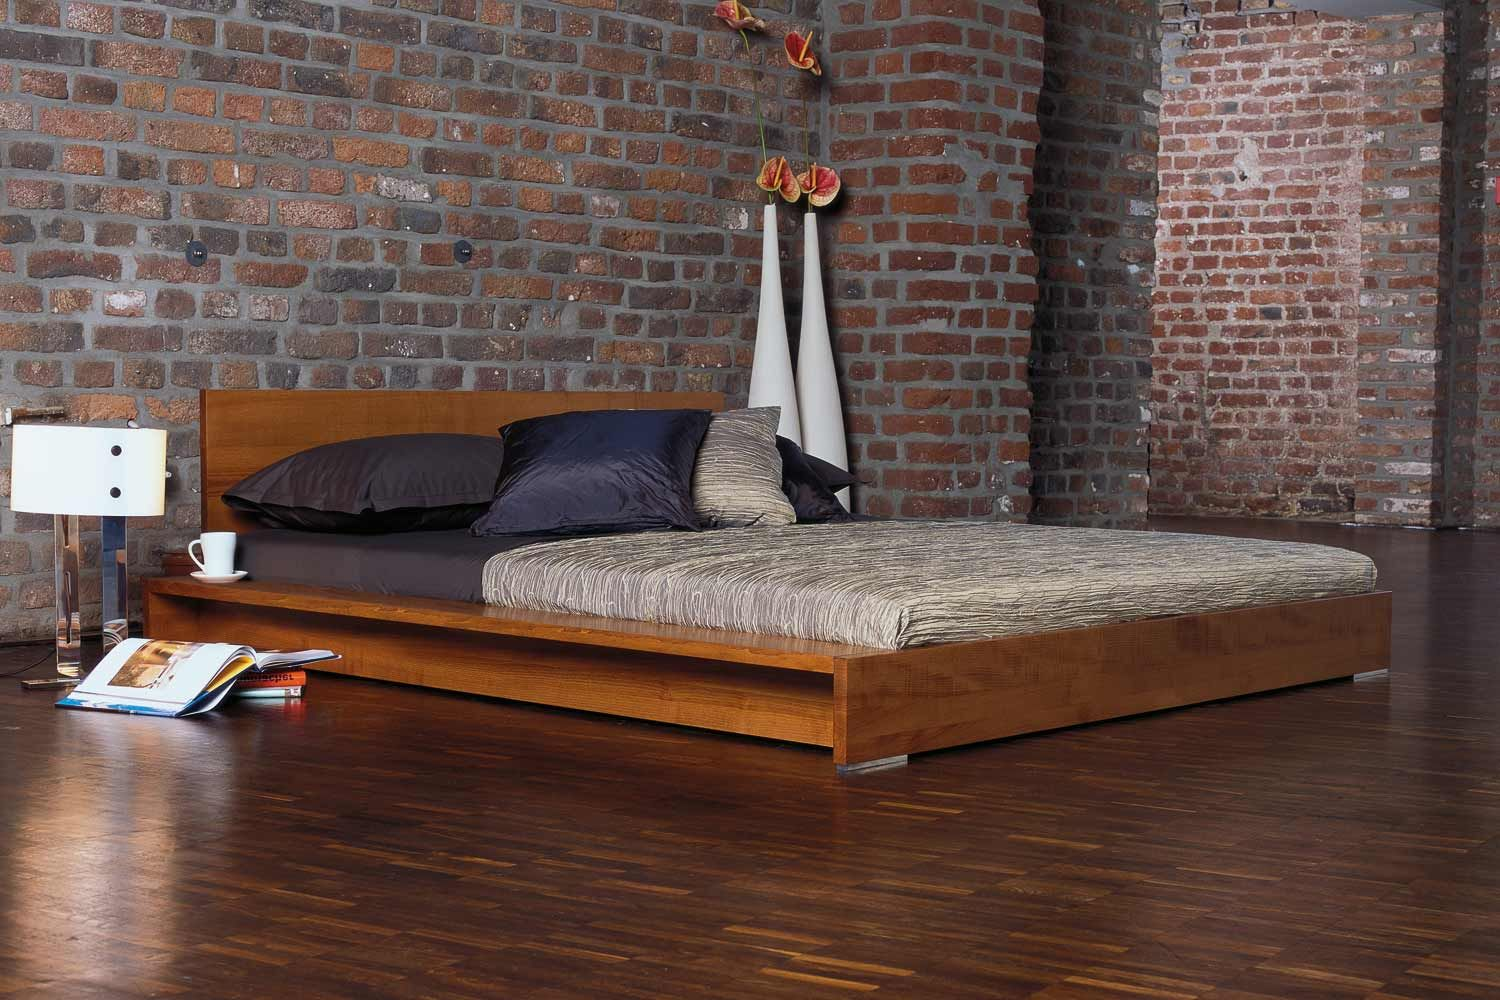 Minimalist Platform Bed Designs and Pictures Wood